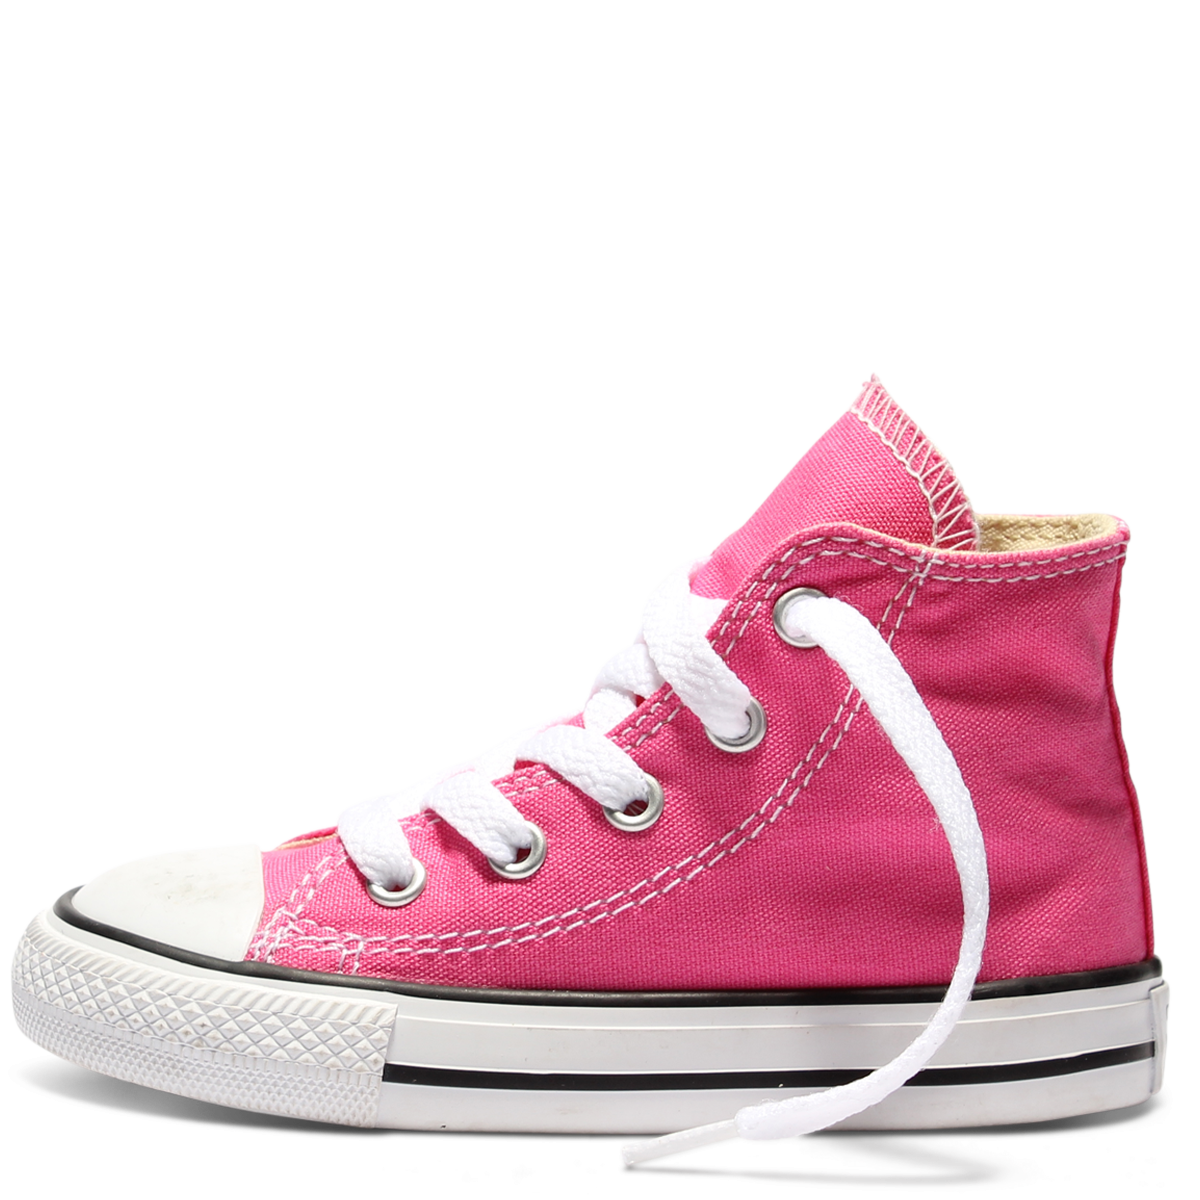 0c446b58c33b Converse Chuck Taylor All Star Fresh Colour Toddler High Top Mod Pink  Famous Rock Shop.